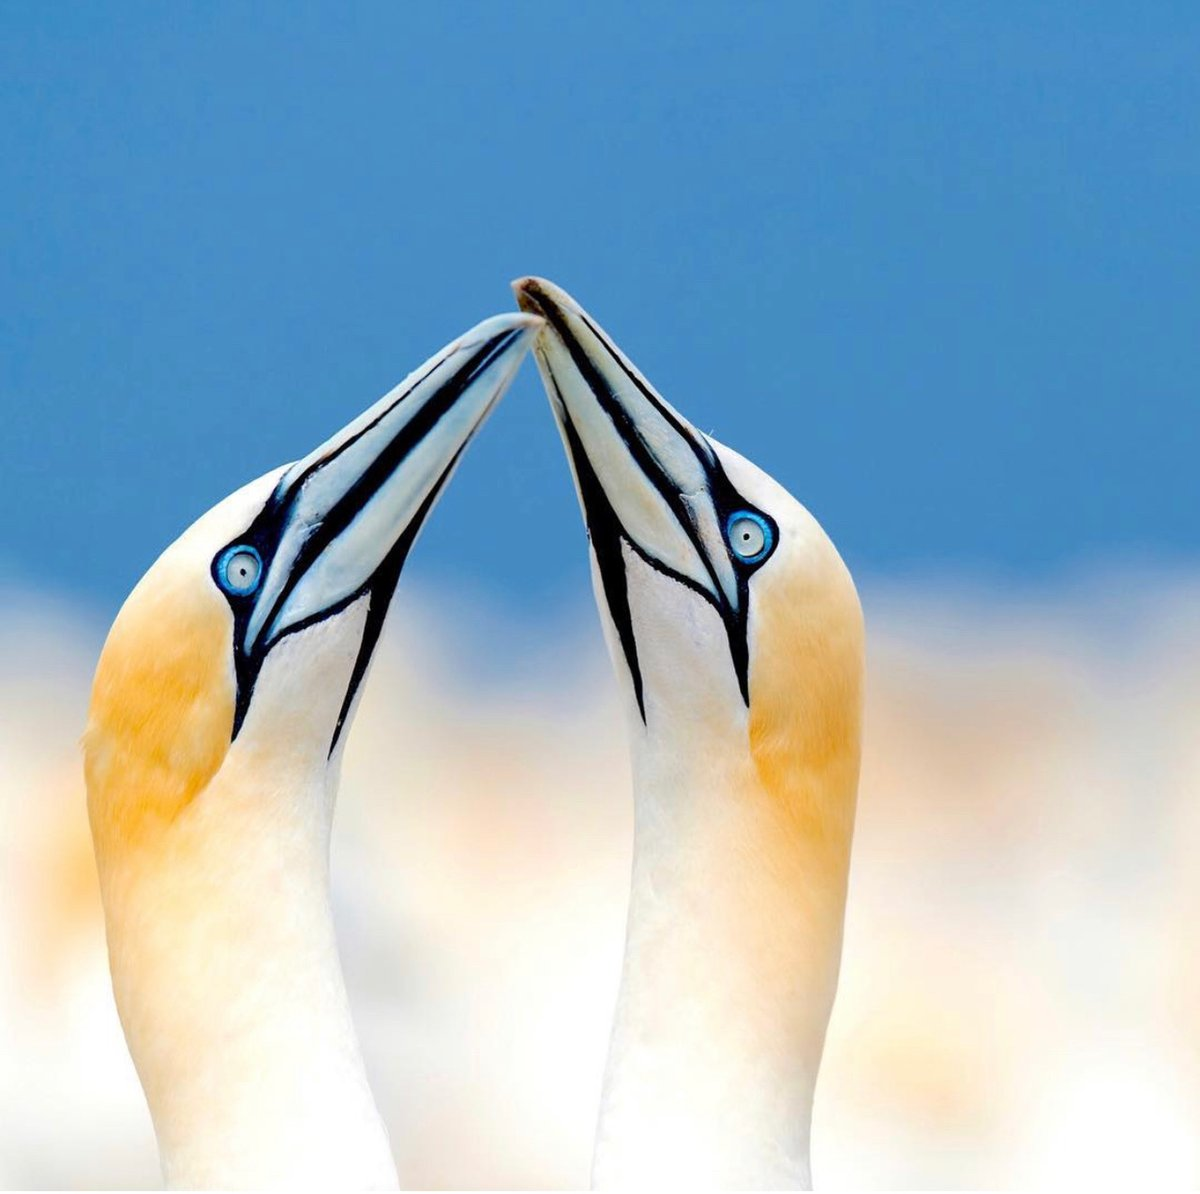 """Featured in National Geographic as Daily Dozen, Top Shot, """"Up in Clouds"""" 2012: Northern Gannets taken in Bonaventure Island, Canada.  @ThePhotoHour @The_PhotoBattle #birds #canada #wildlifephotography #NaturePhotography #TwitterNatureCommunity"""